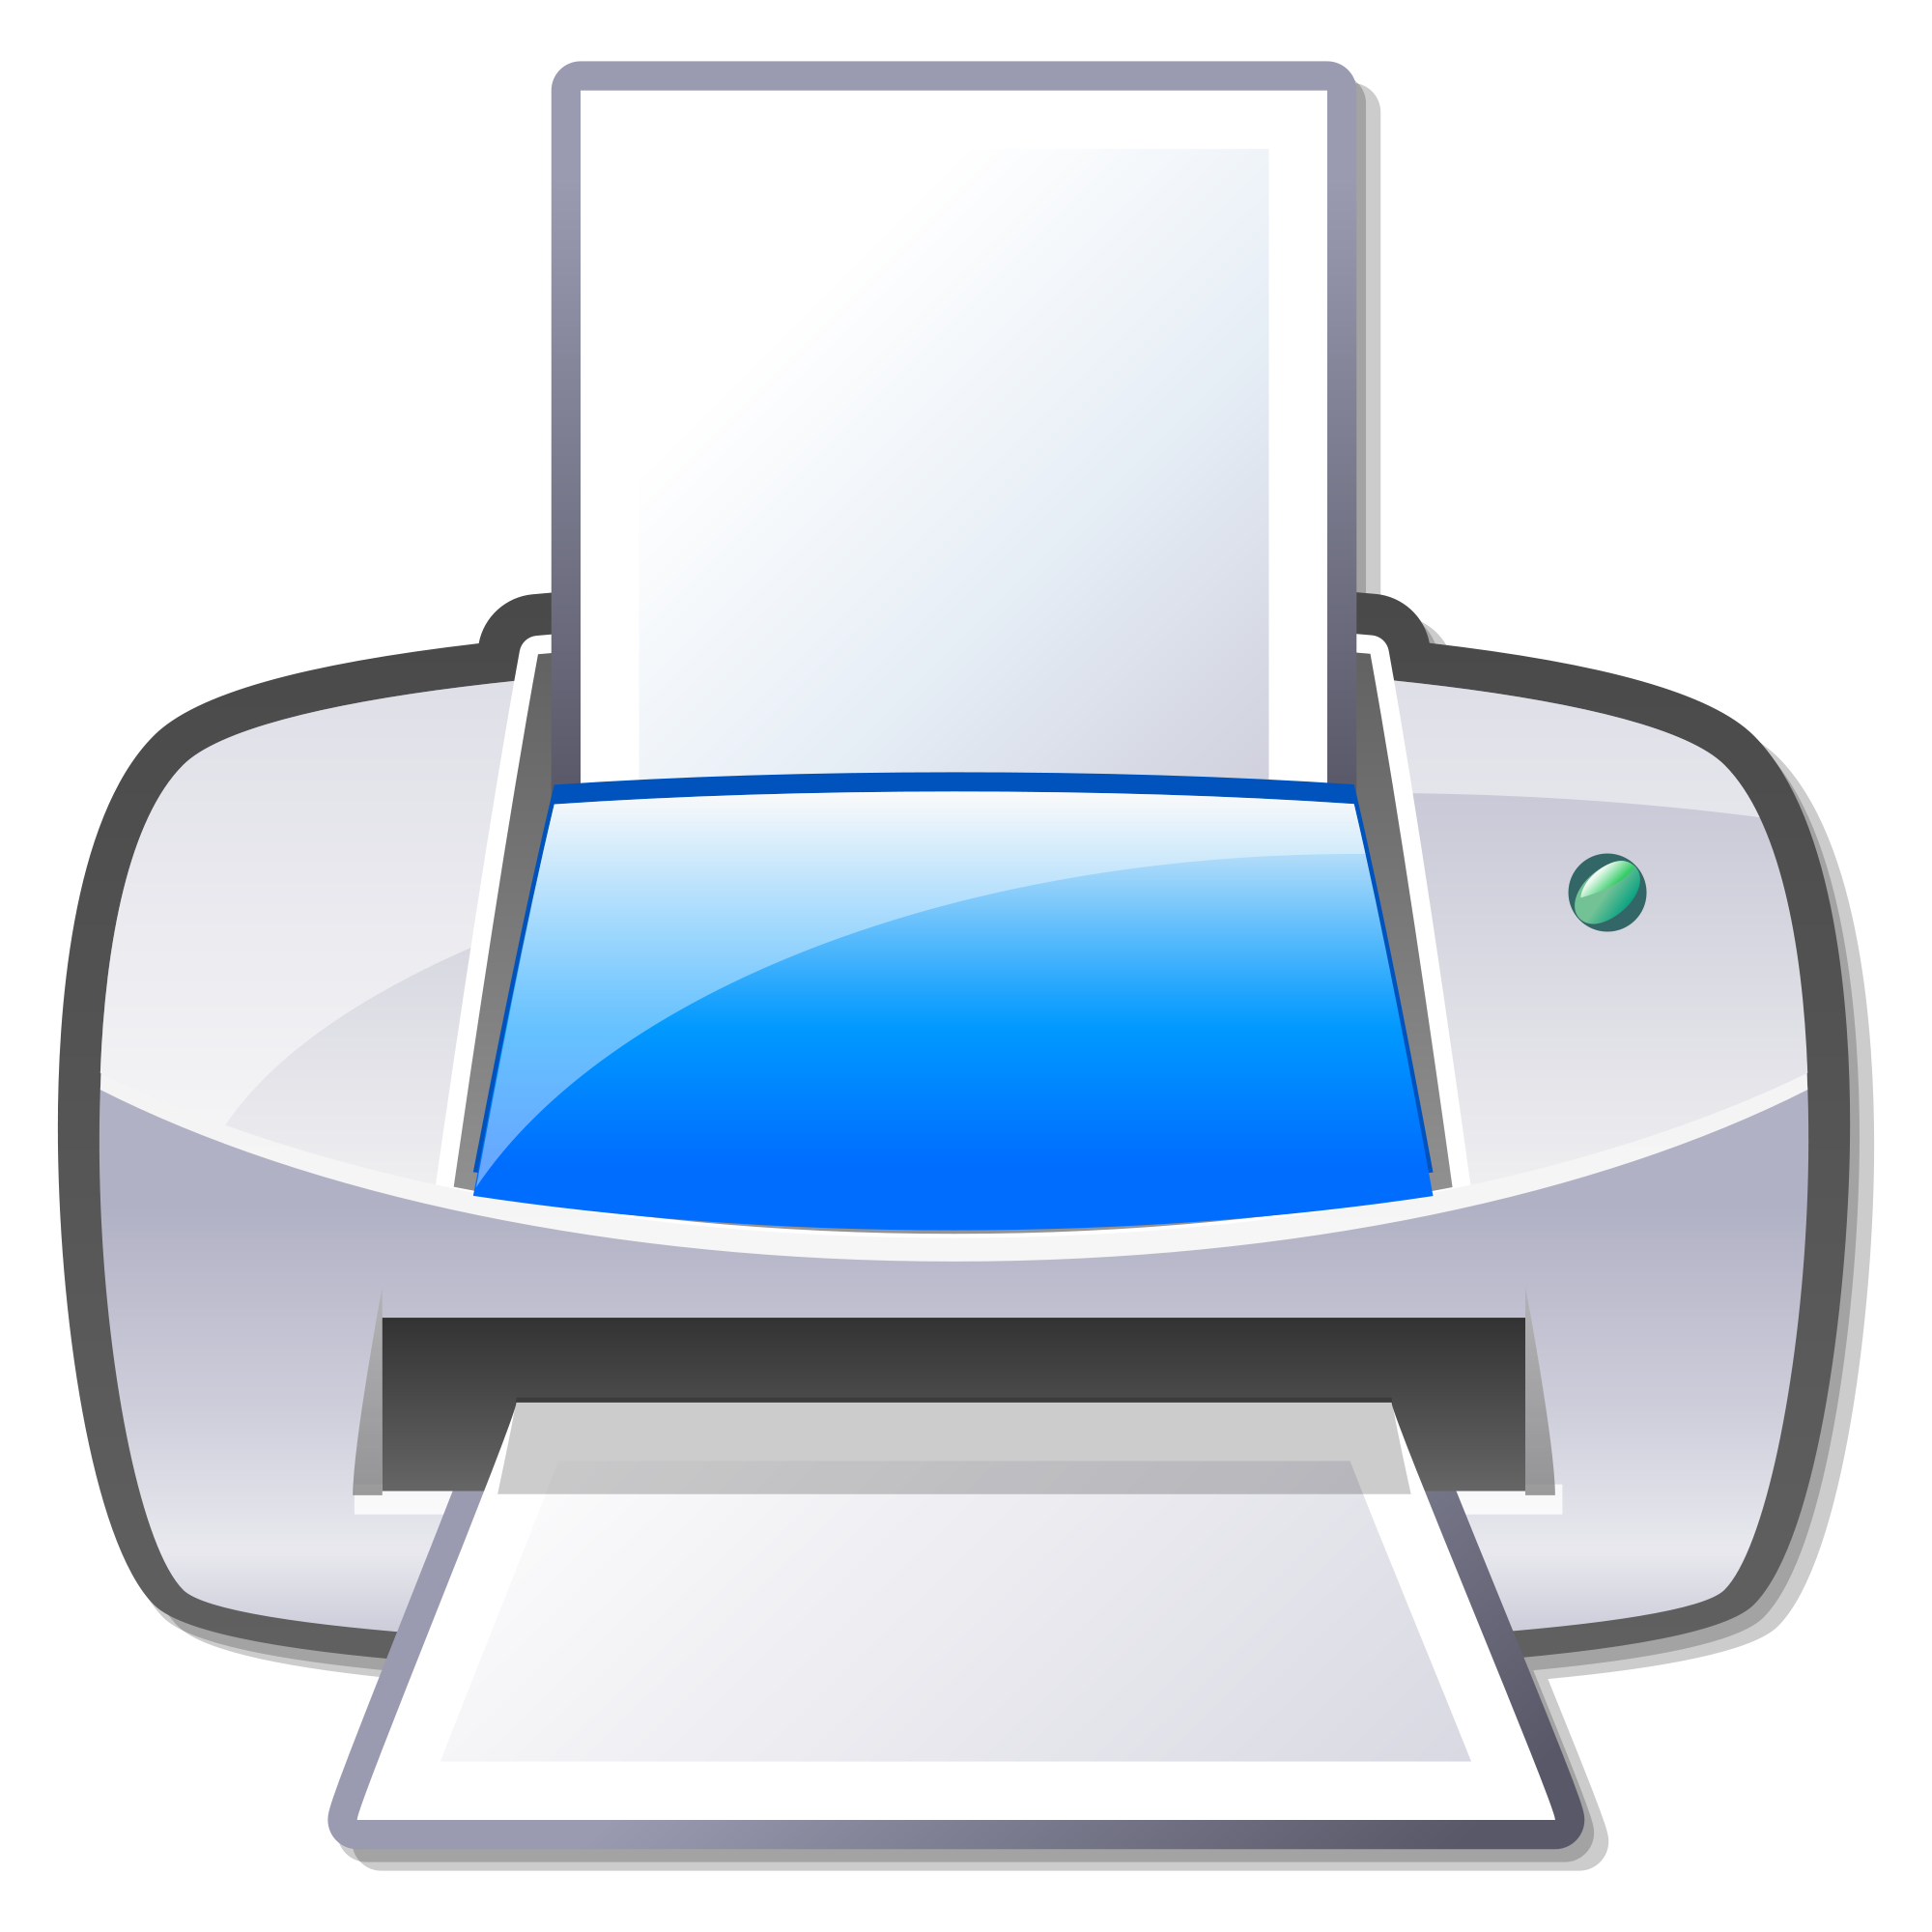 Printer Icon   ClipArt Best image #1027